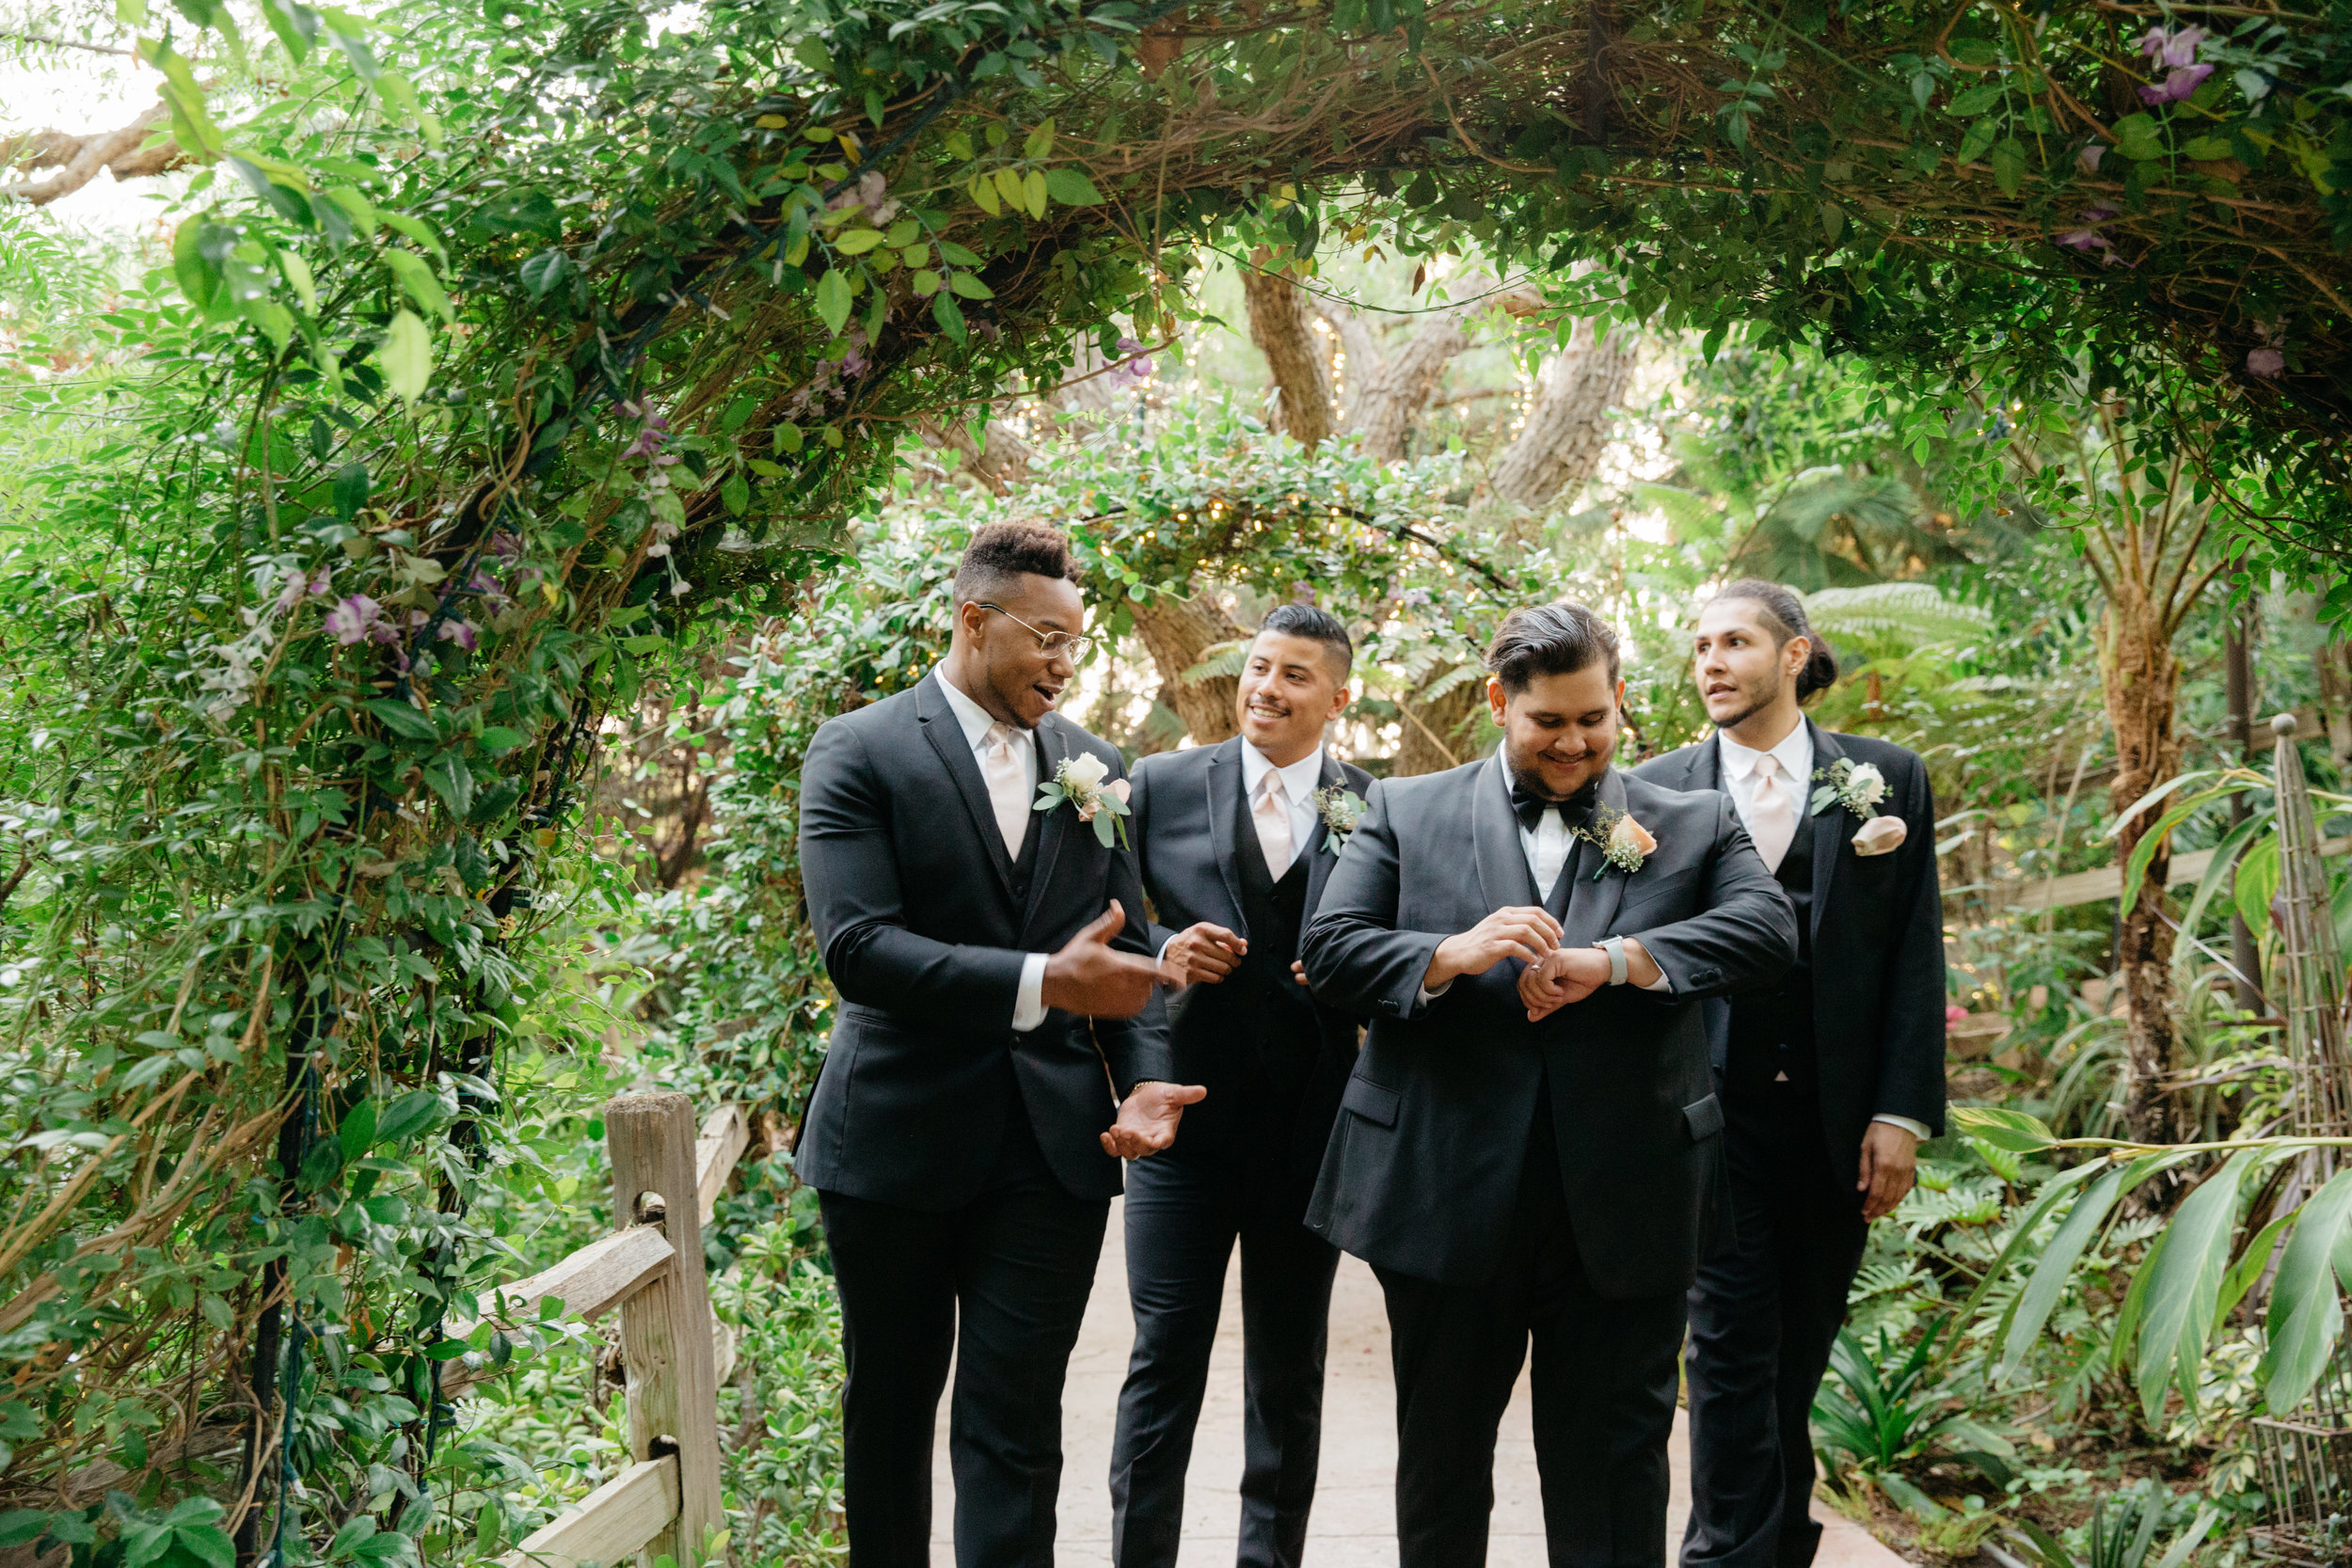 The Vineyard Wedding Jenna Bells and Laces Photography-25.jpg